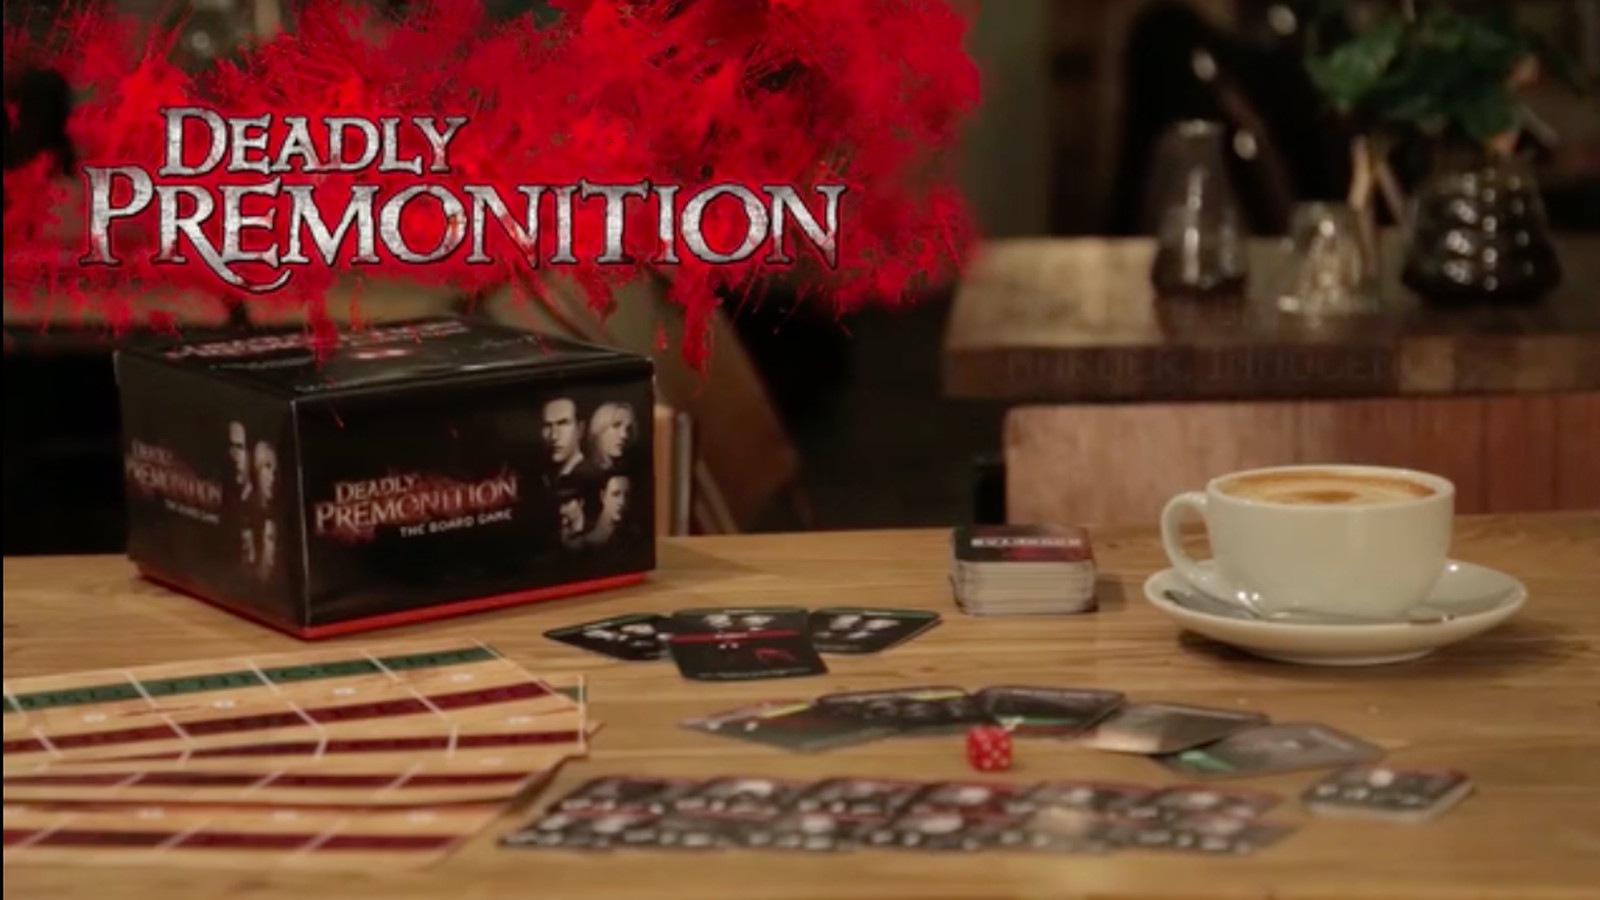 Deadly Premonition: The Board Game seems toned down from the original